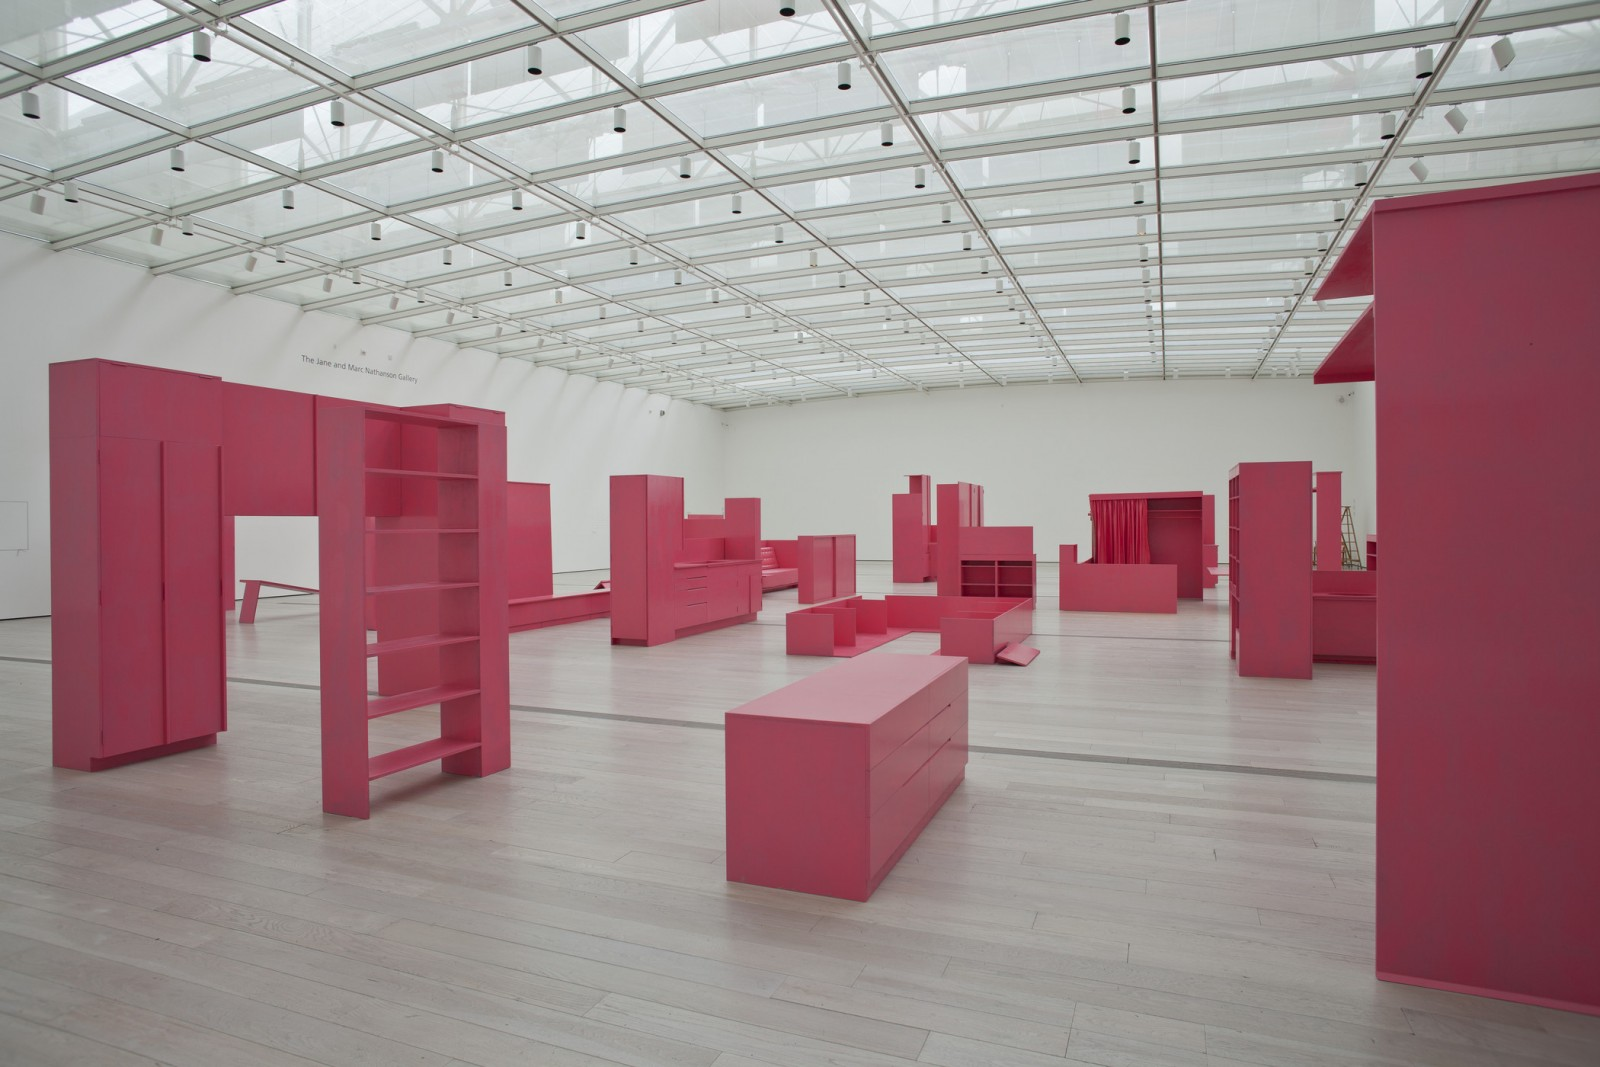 Image: Stephen Prina, As He Remembered It, installation views, Los Angeles County Museum of Art, 2013